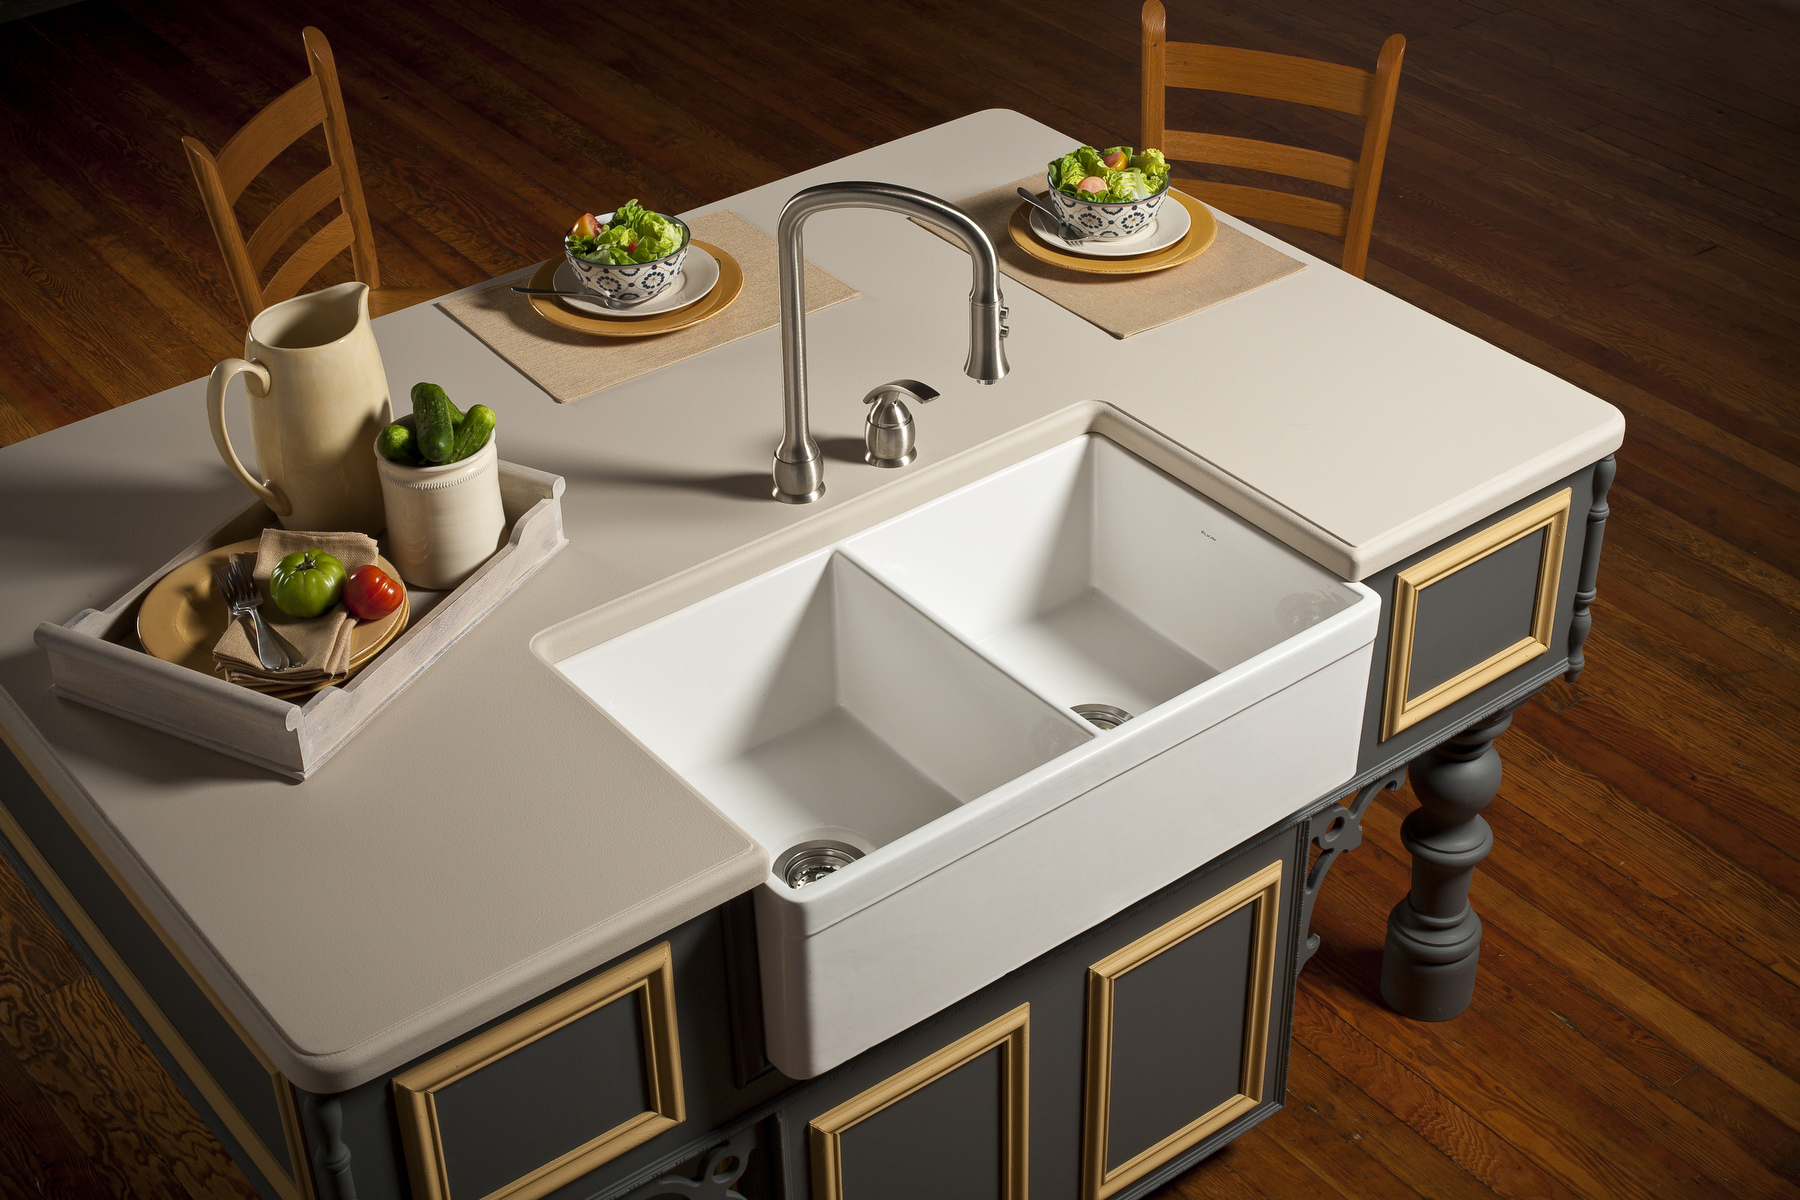 Unique Modern Undermount Sink Design